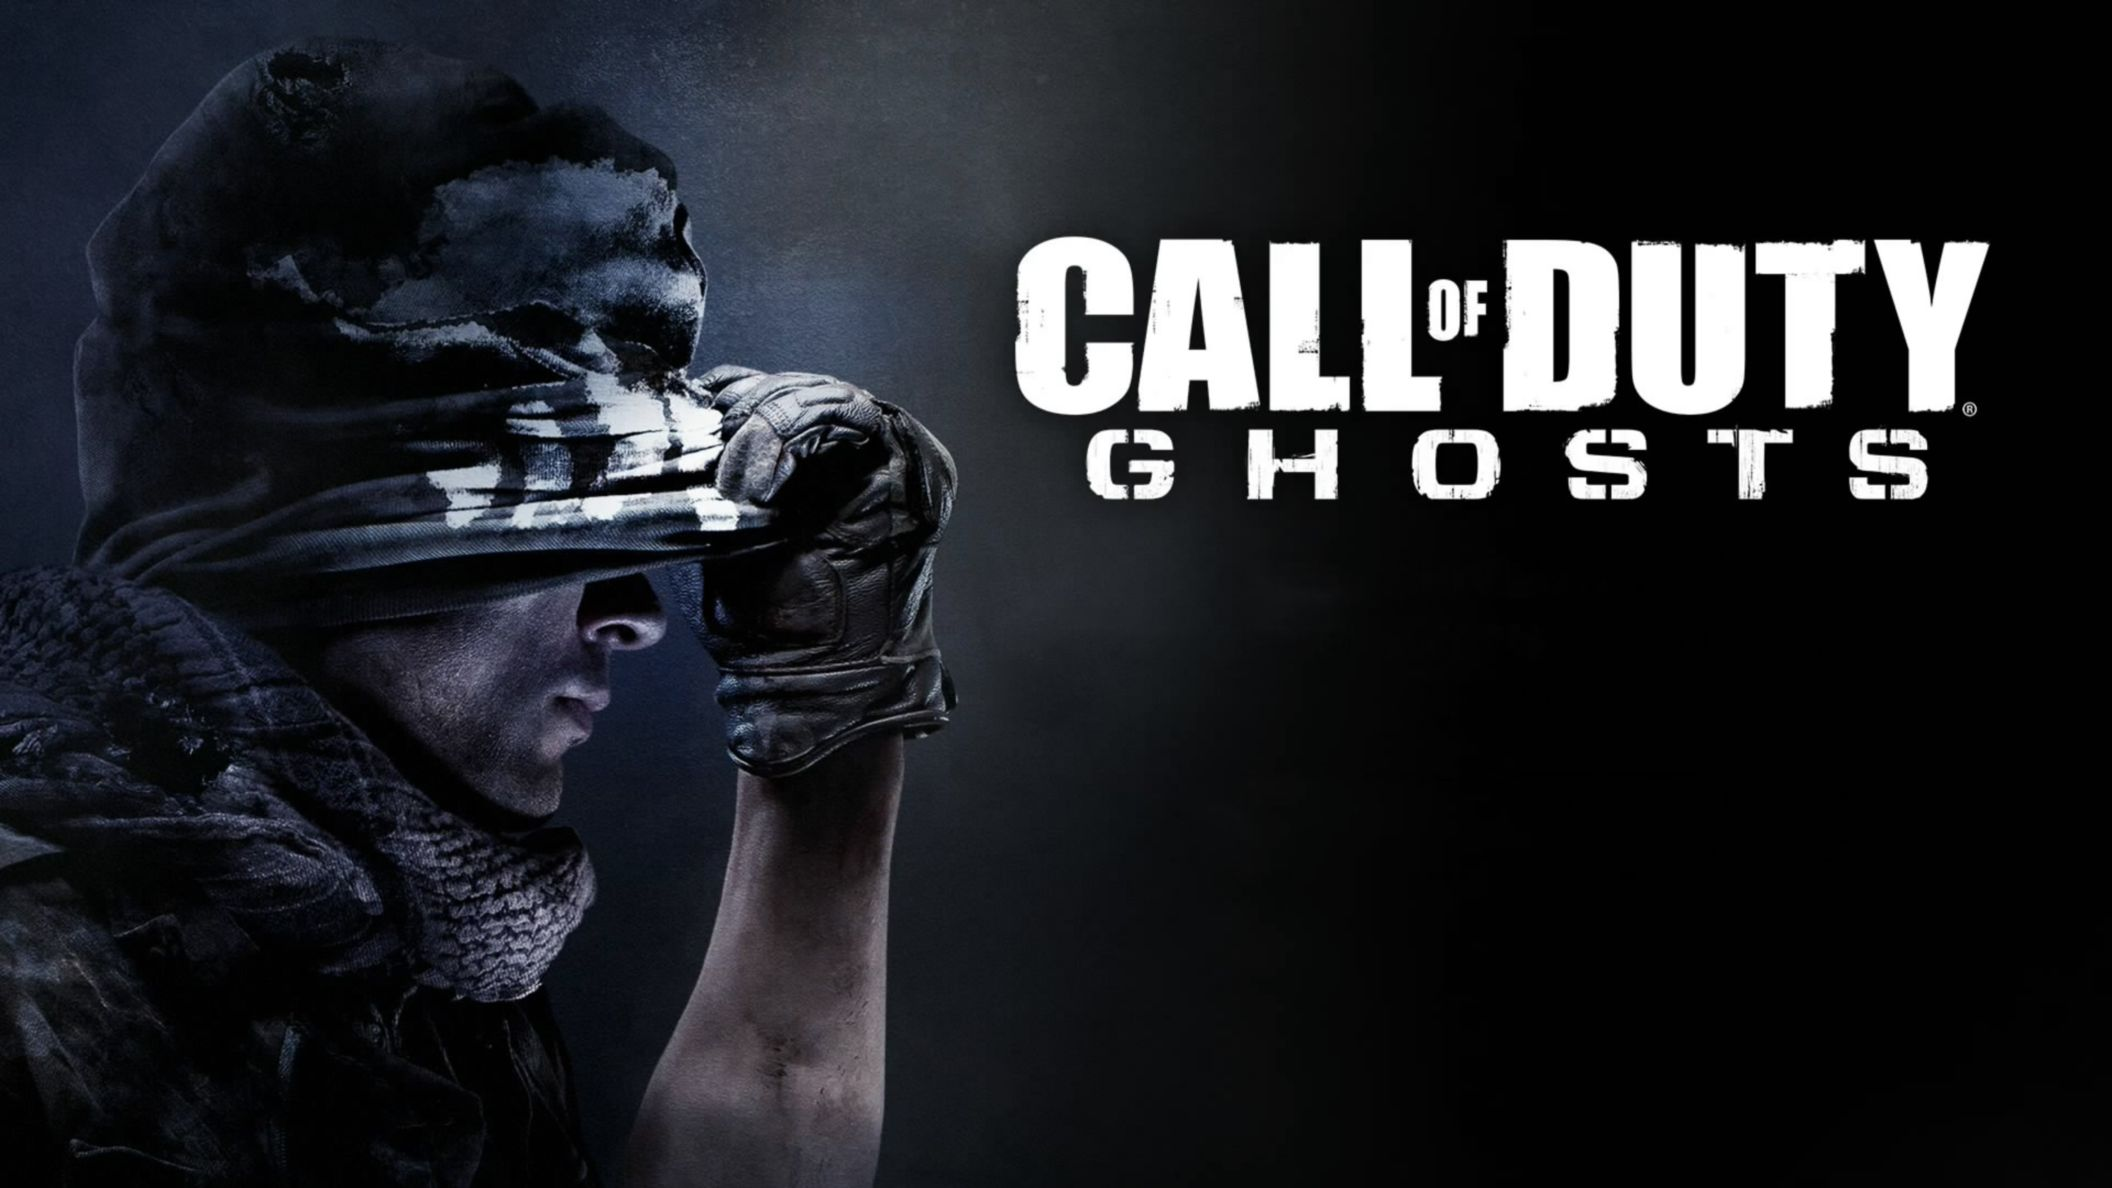 Download free HD Call Of Duty Ghosts For Desktop Wallpaper, image